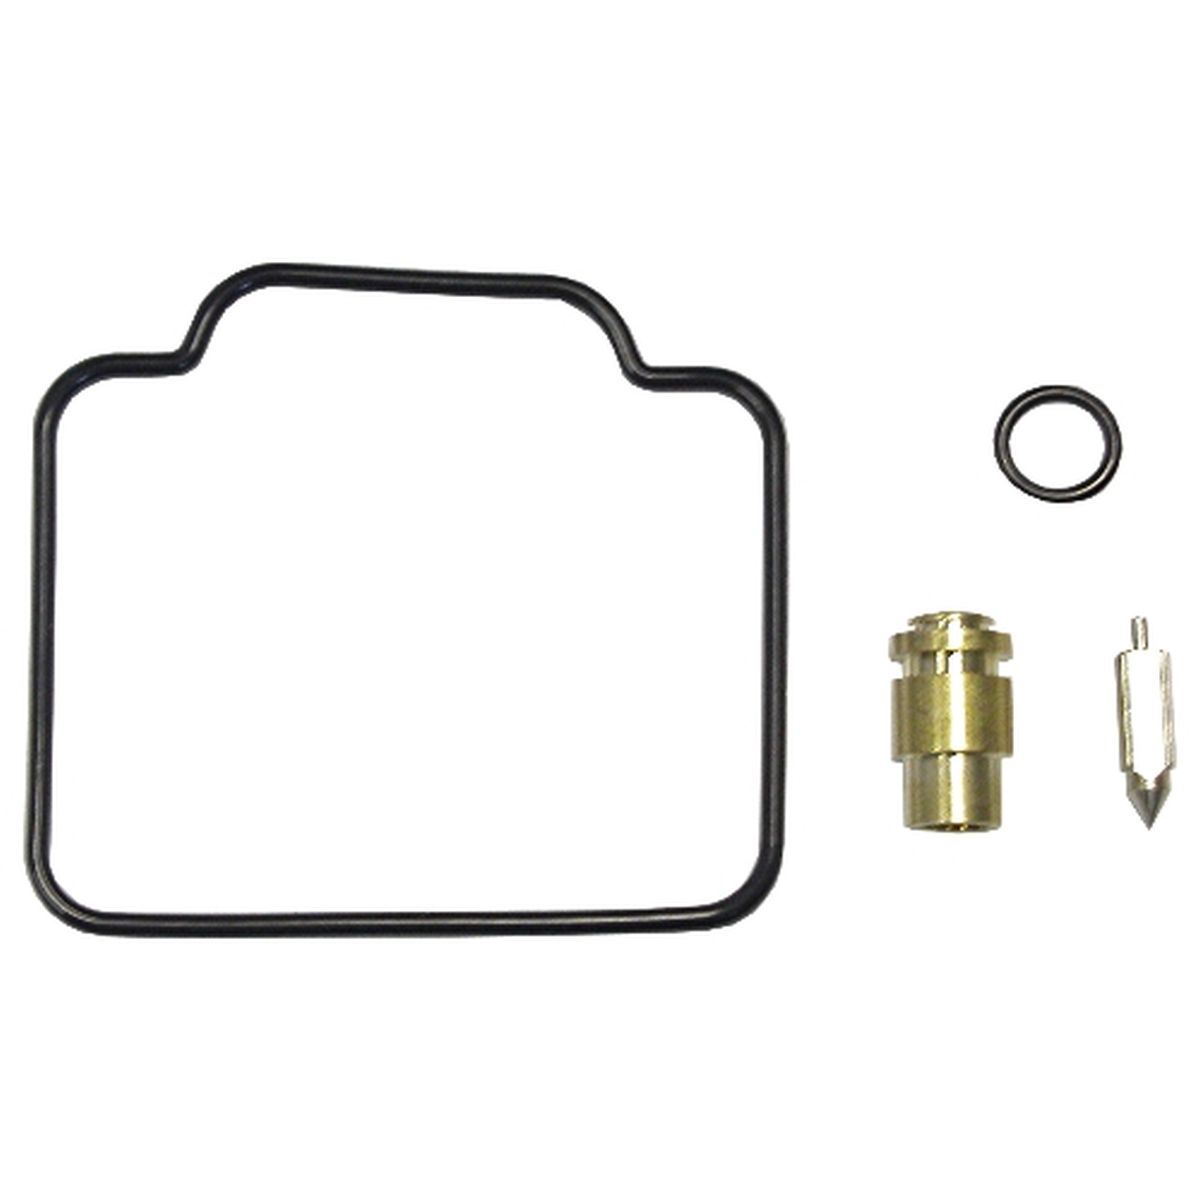 AW Motorcycle Parts. Carburettor Repair Kit Suzuki GSX600F